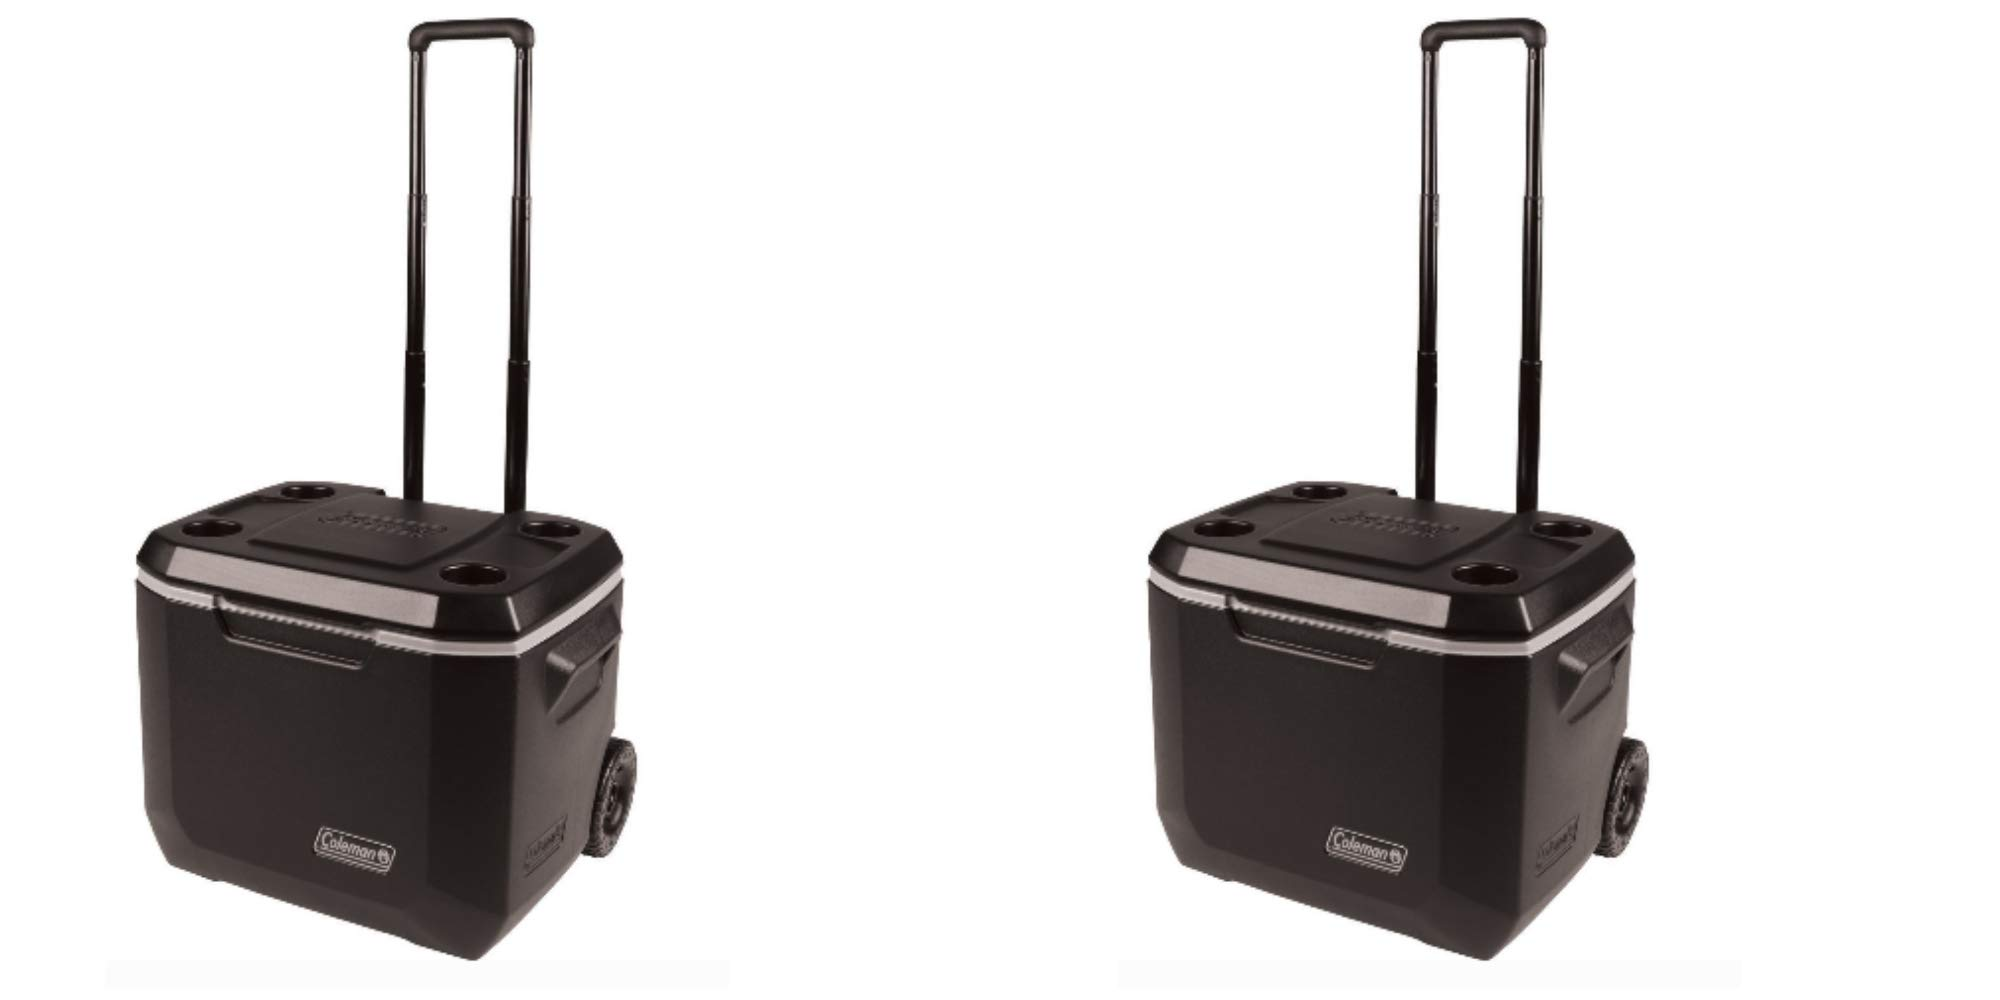 Coleman 50-Quart Xtreme 5-Day Heavy-Duty Cooler with Wheels, Black/Pack of 2